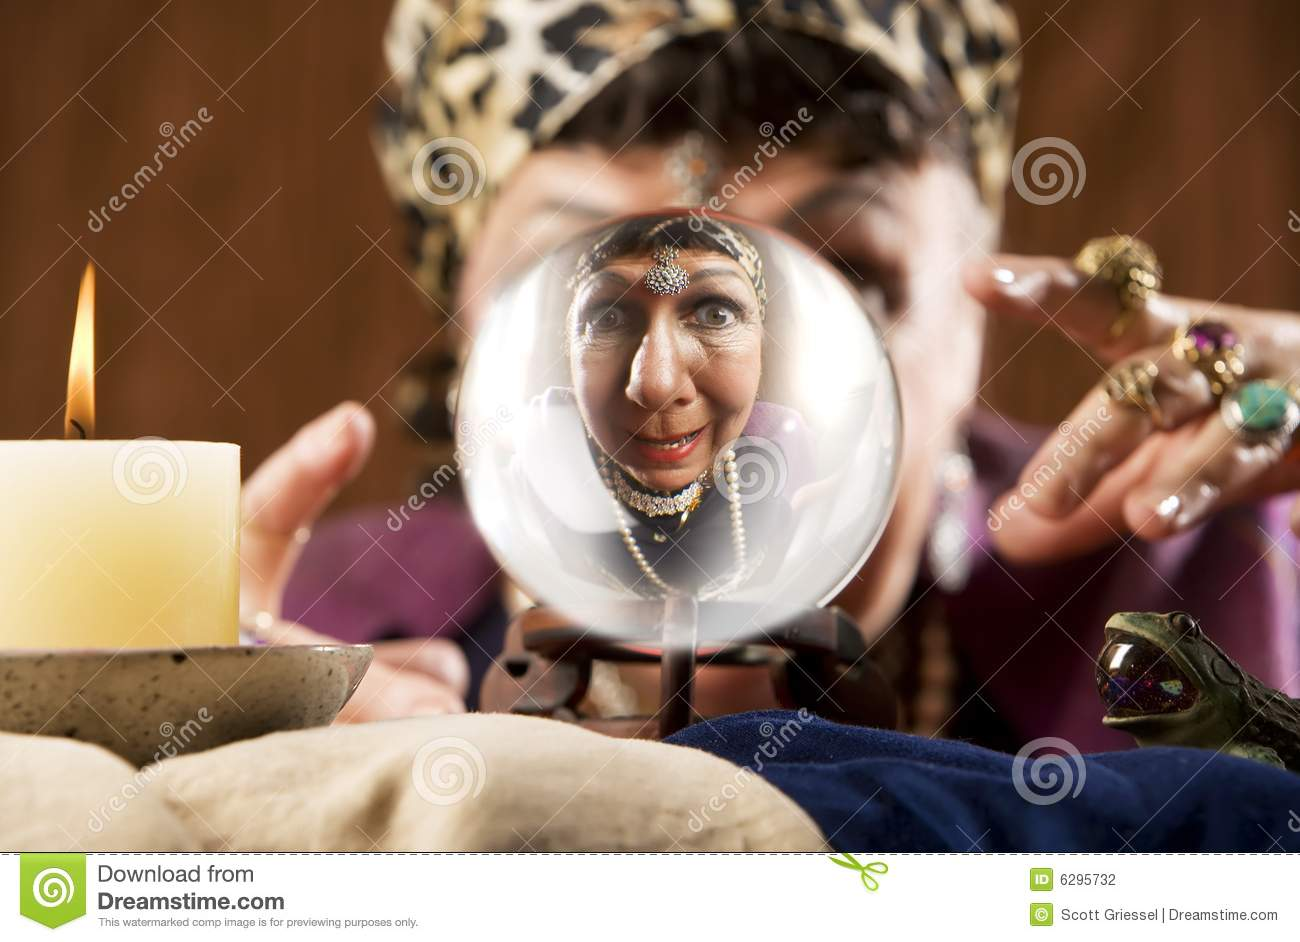 Gyspy Seen In A Crystal Ball Stock Photo - Image of character